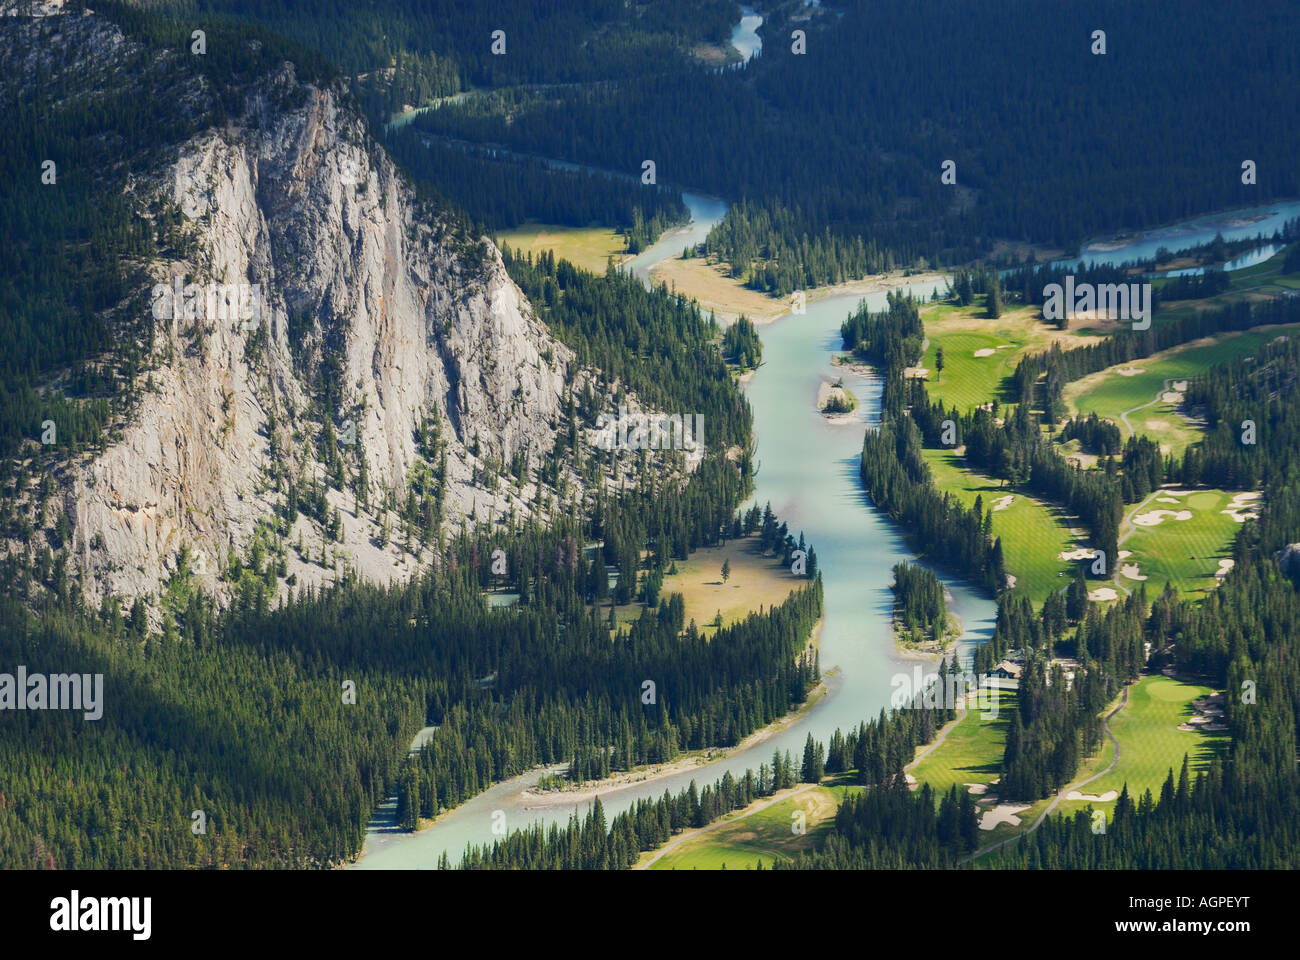 View of Banff Springs Golf Course in the Banff National Park Alberta Canada - Stock Image